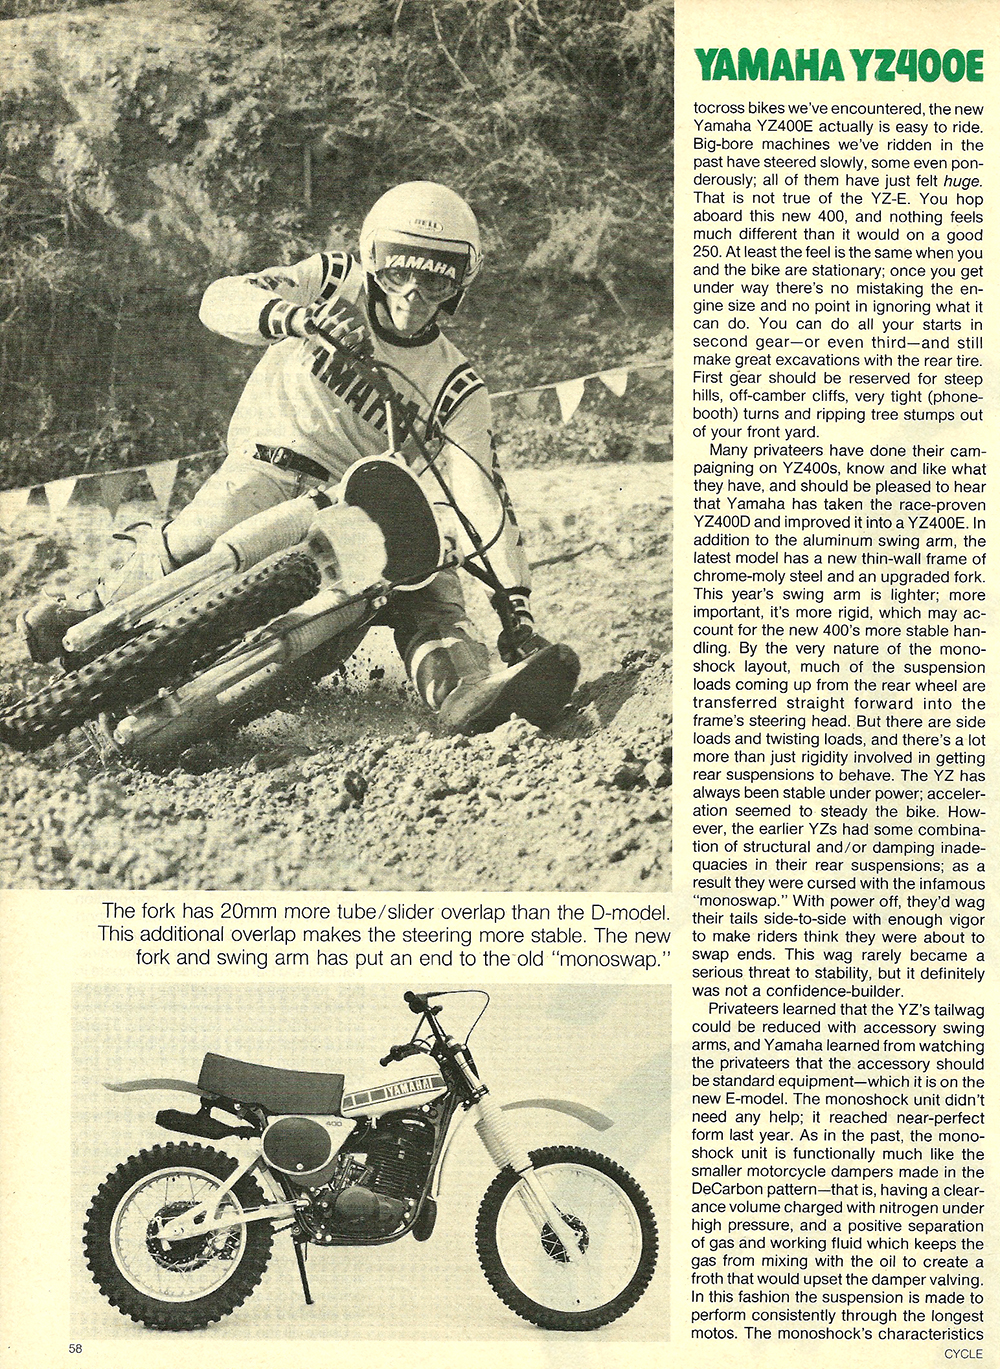 1978 Yamaha YZ400E road test 3.jpg